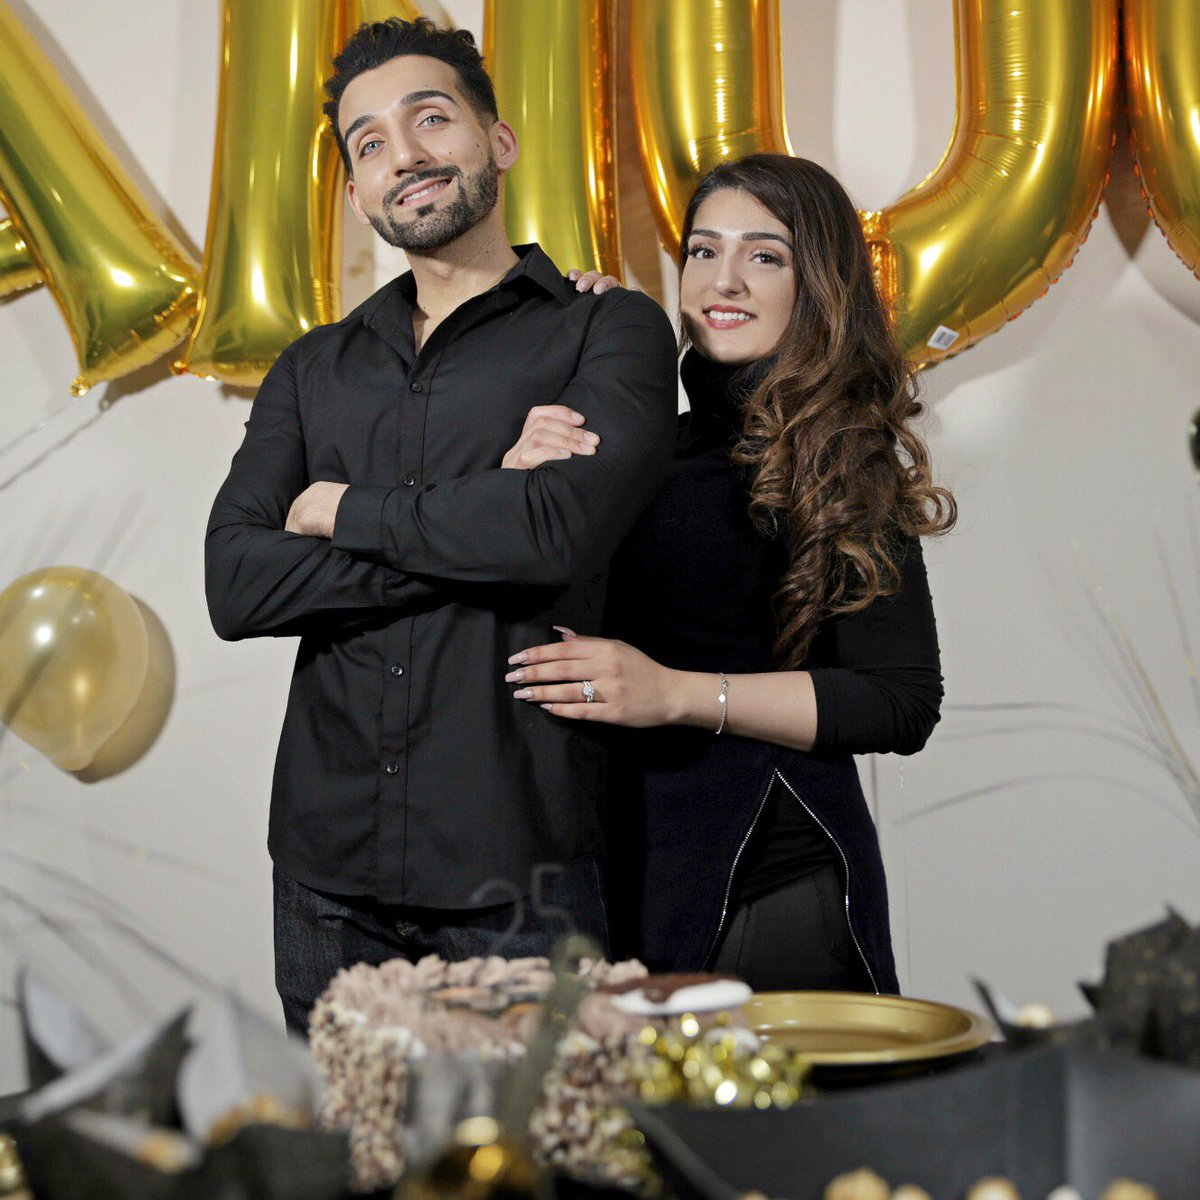 Sham Idrees On Twitter Happy Birthday To My Sister Idreesanaa Thank U For Letting Me Post This Pic After Rejecting 99 Others